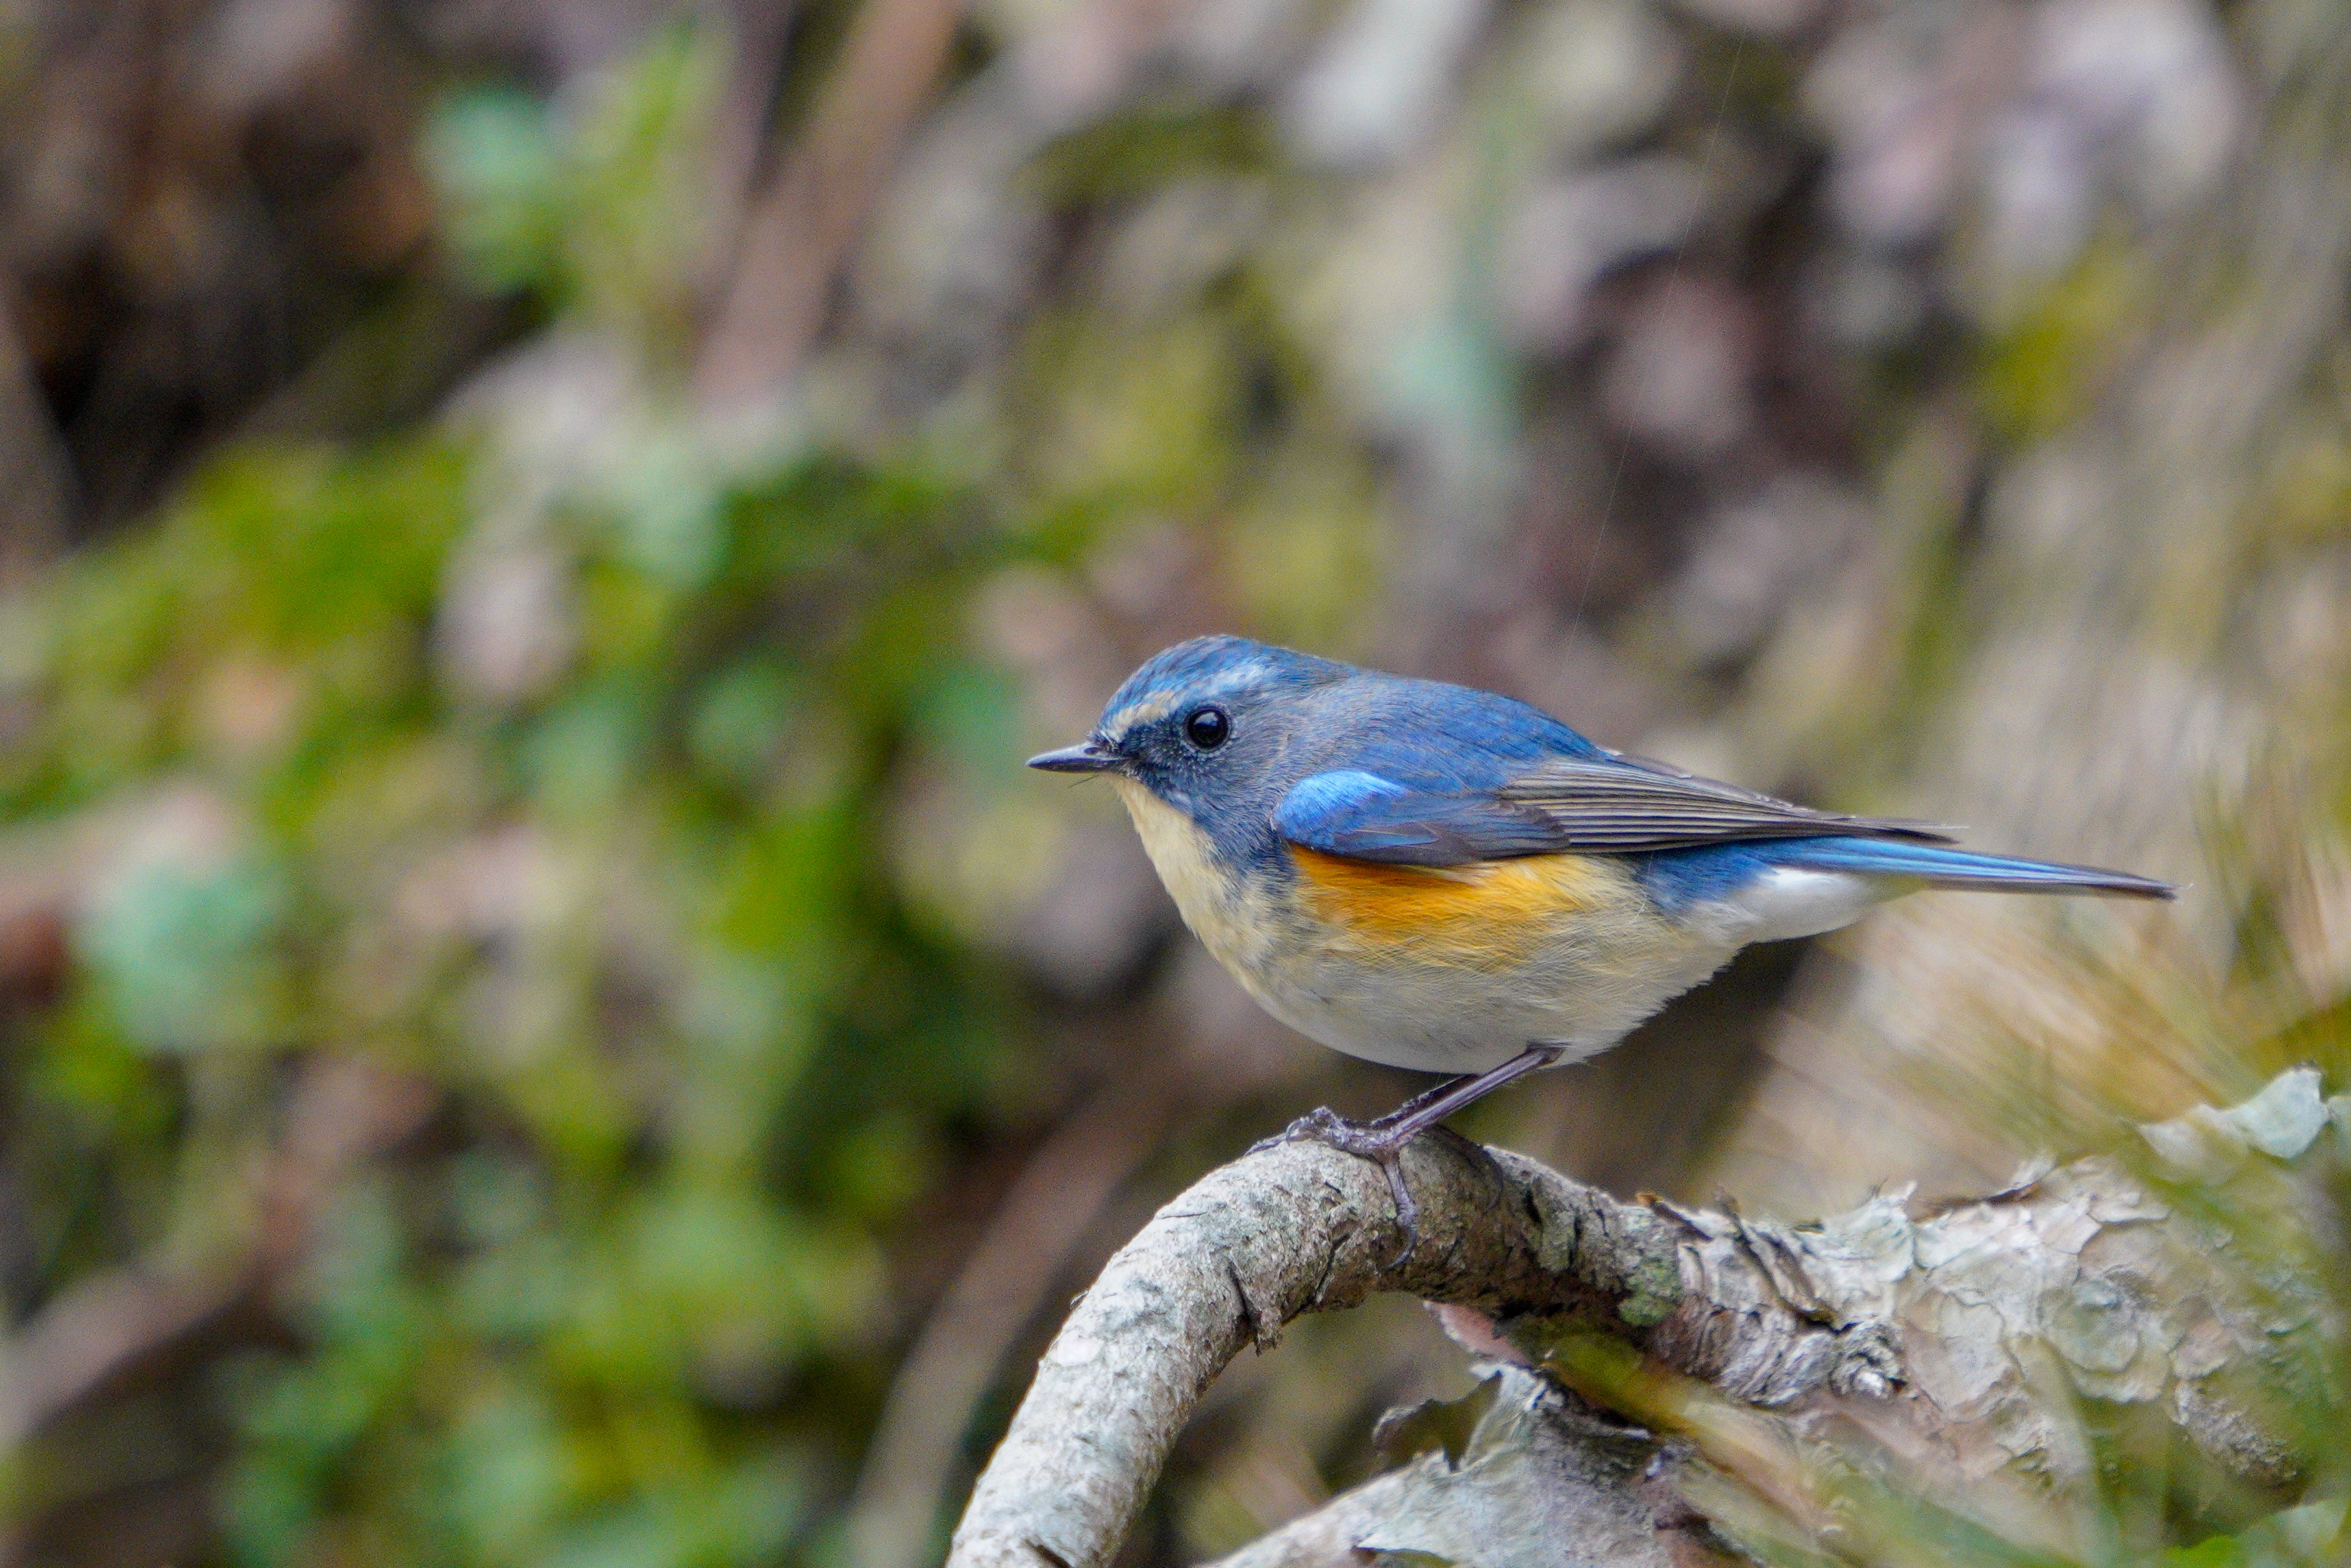 Red-flanked Bluetail ルリビタキ 14cm ヒタキ科